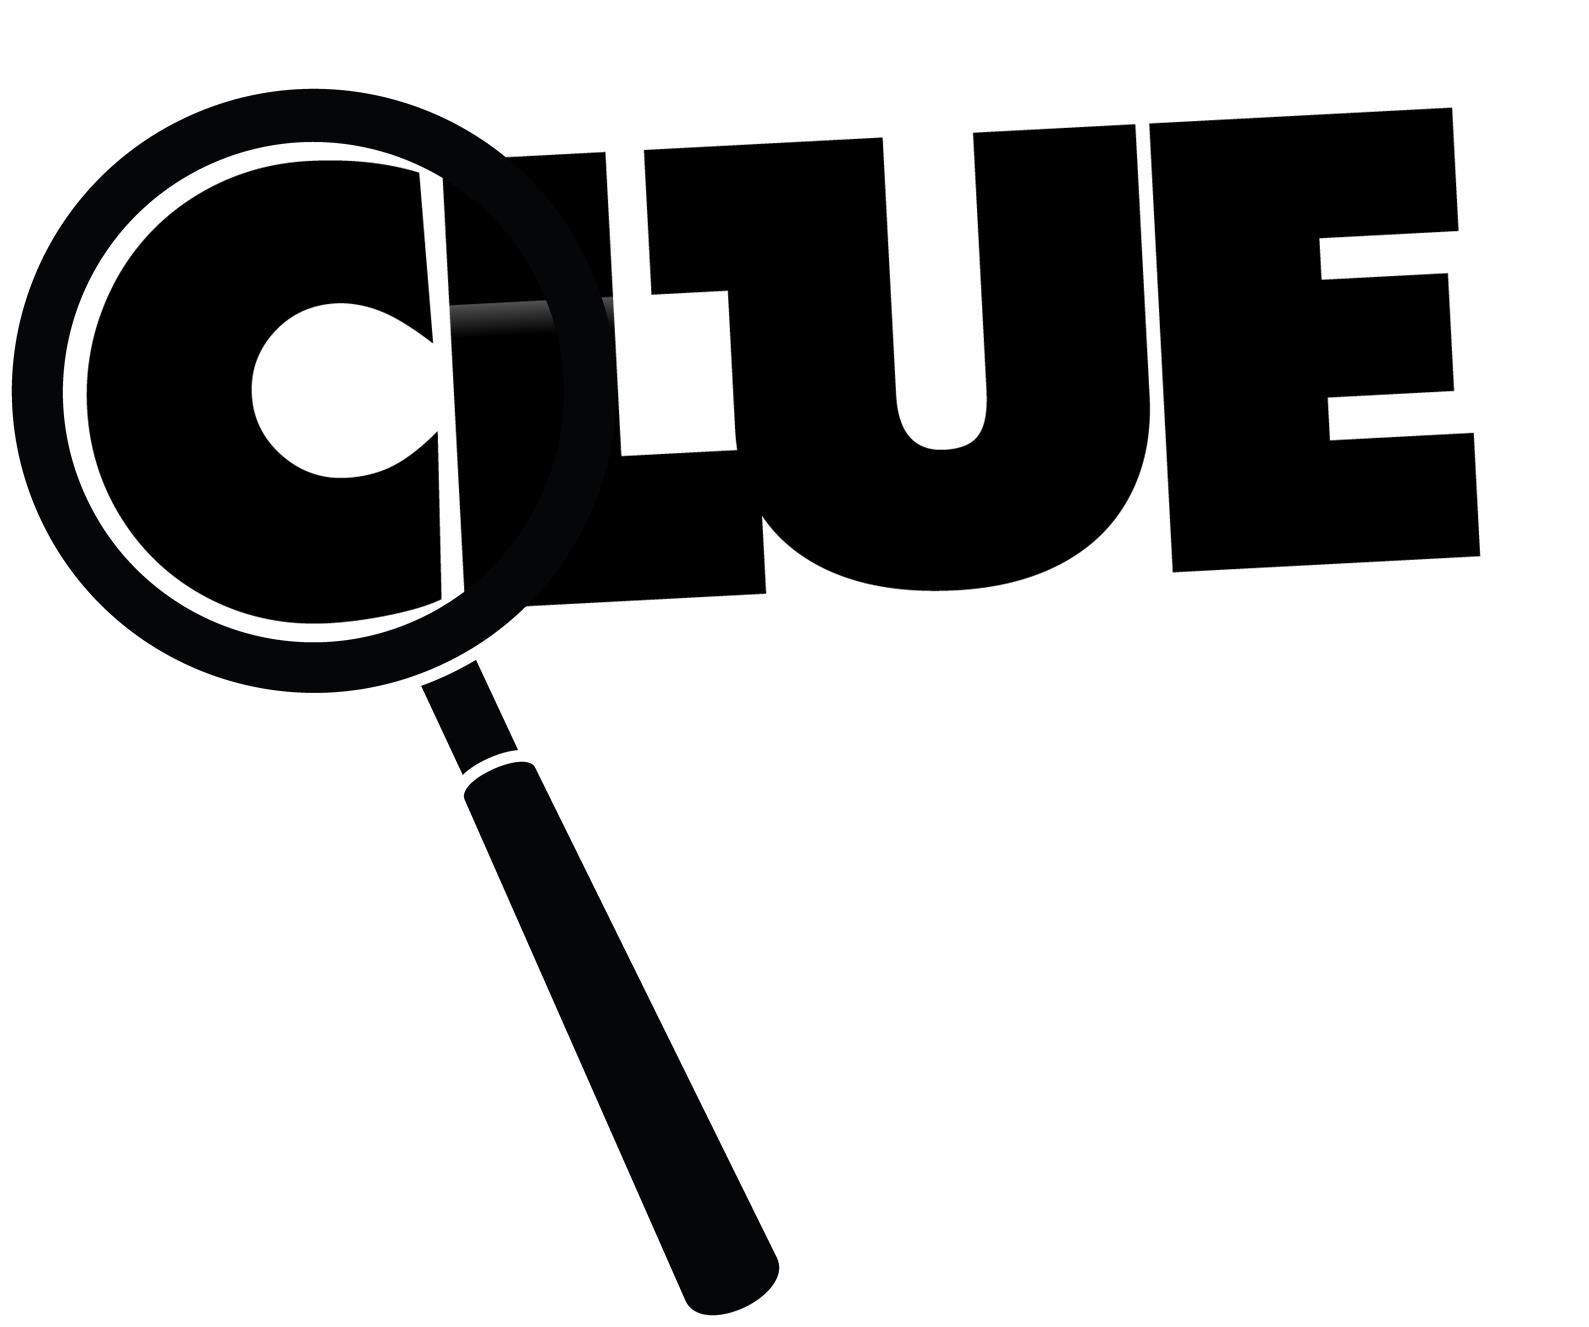 Mystery clipart cluedo. Clue board game characters